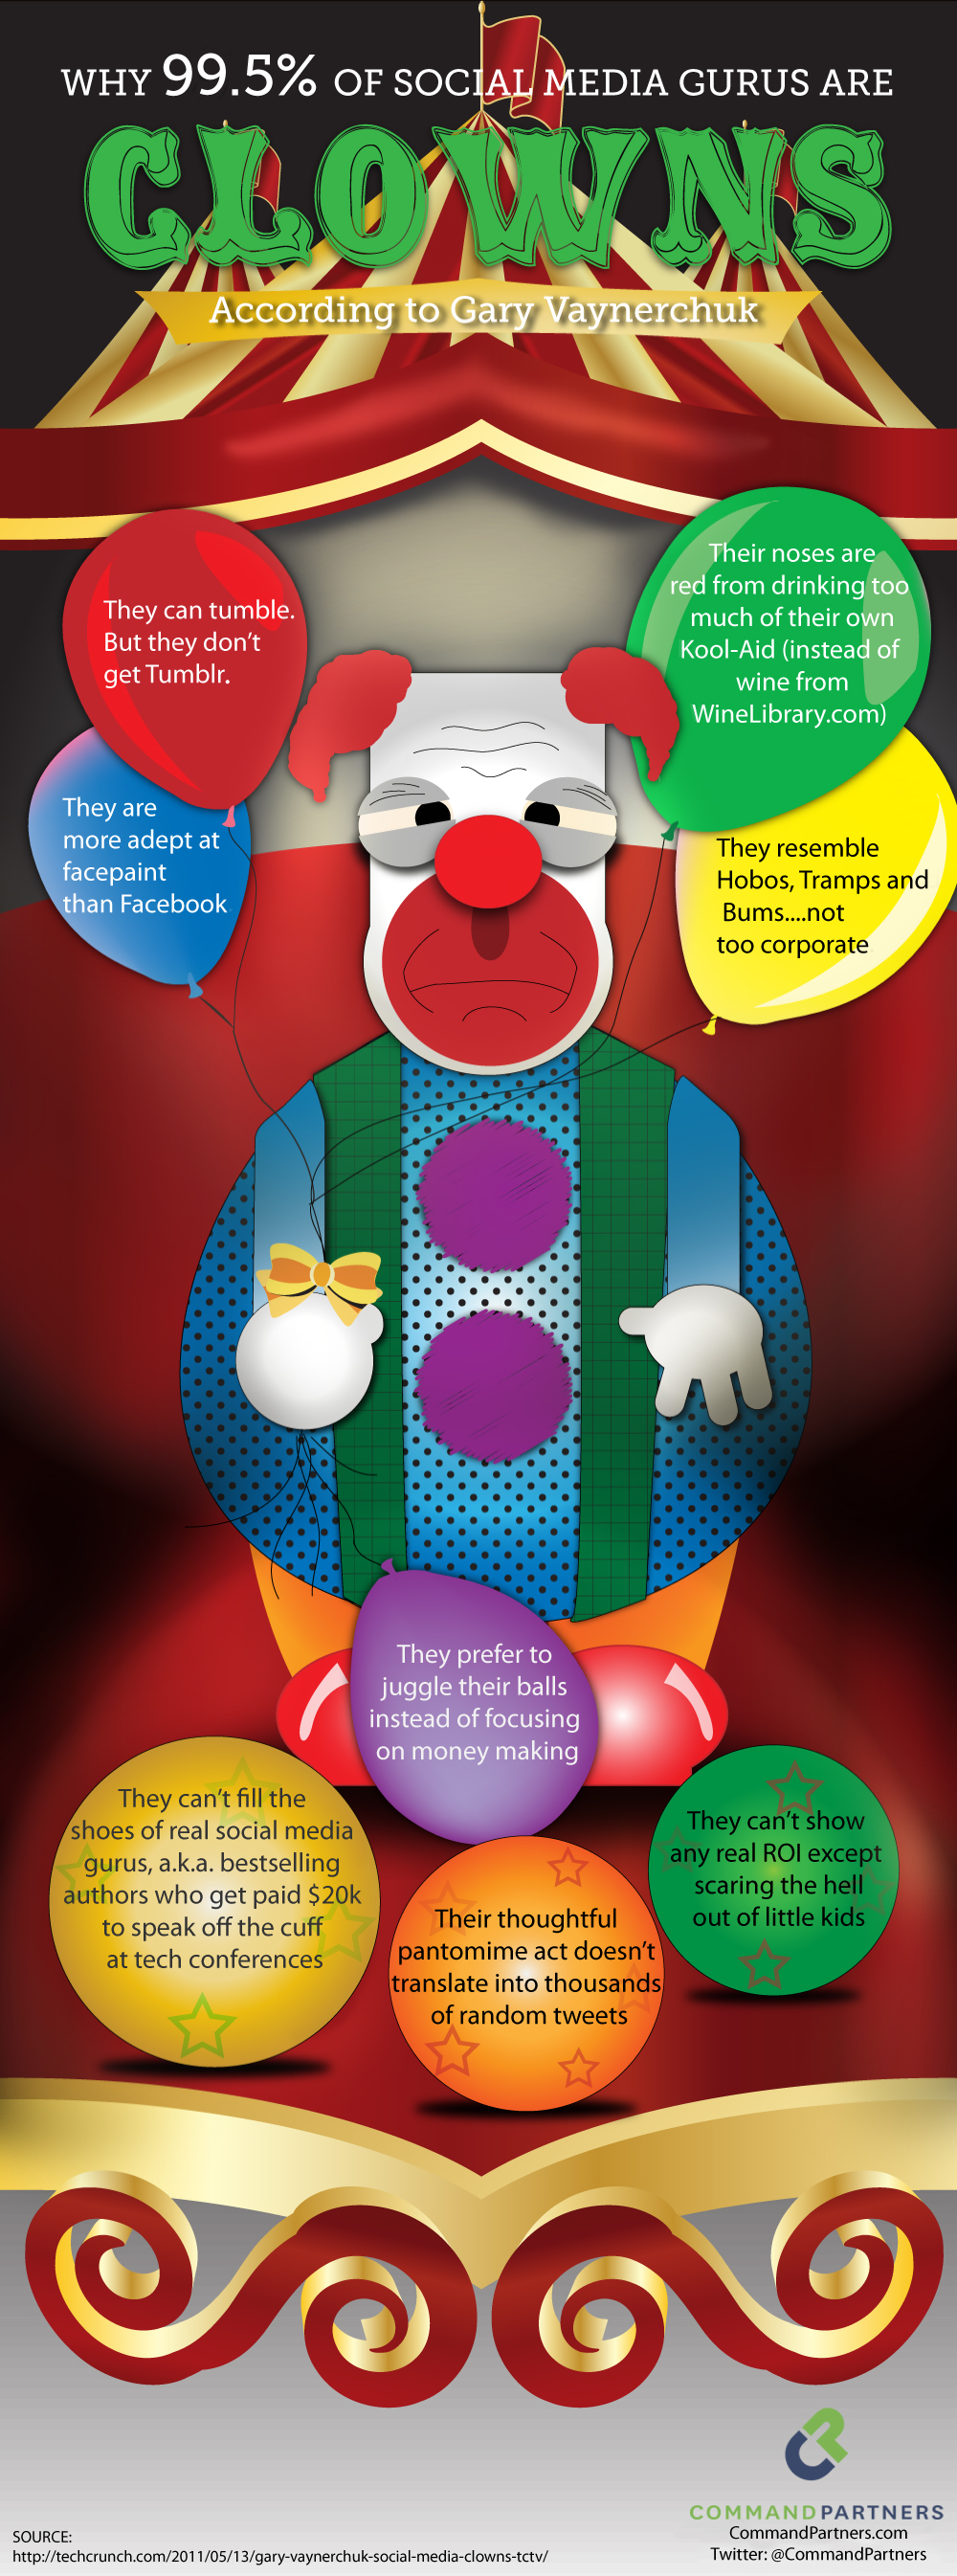 Infographic: Social Media Gurus Are Clowns